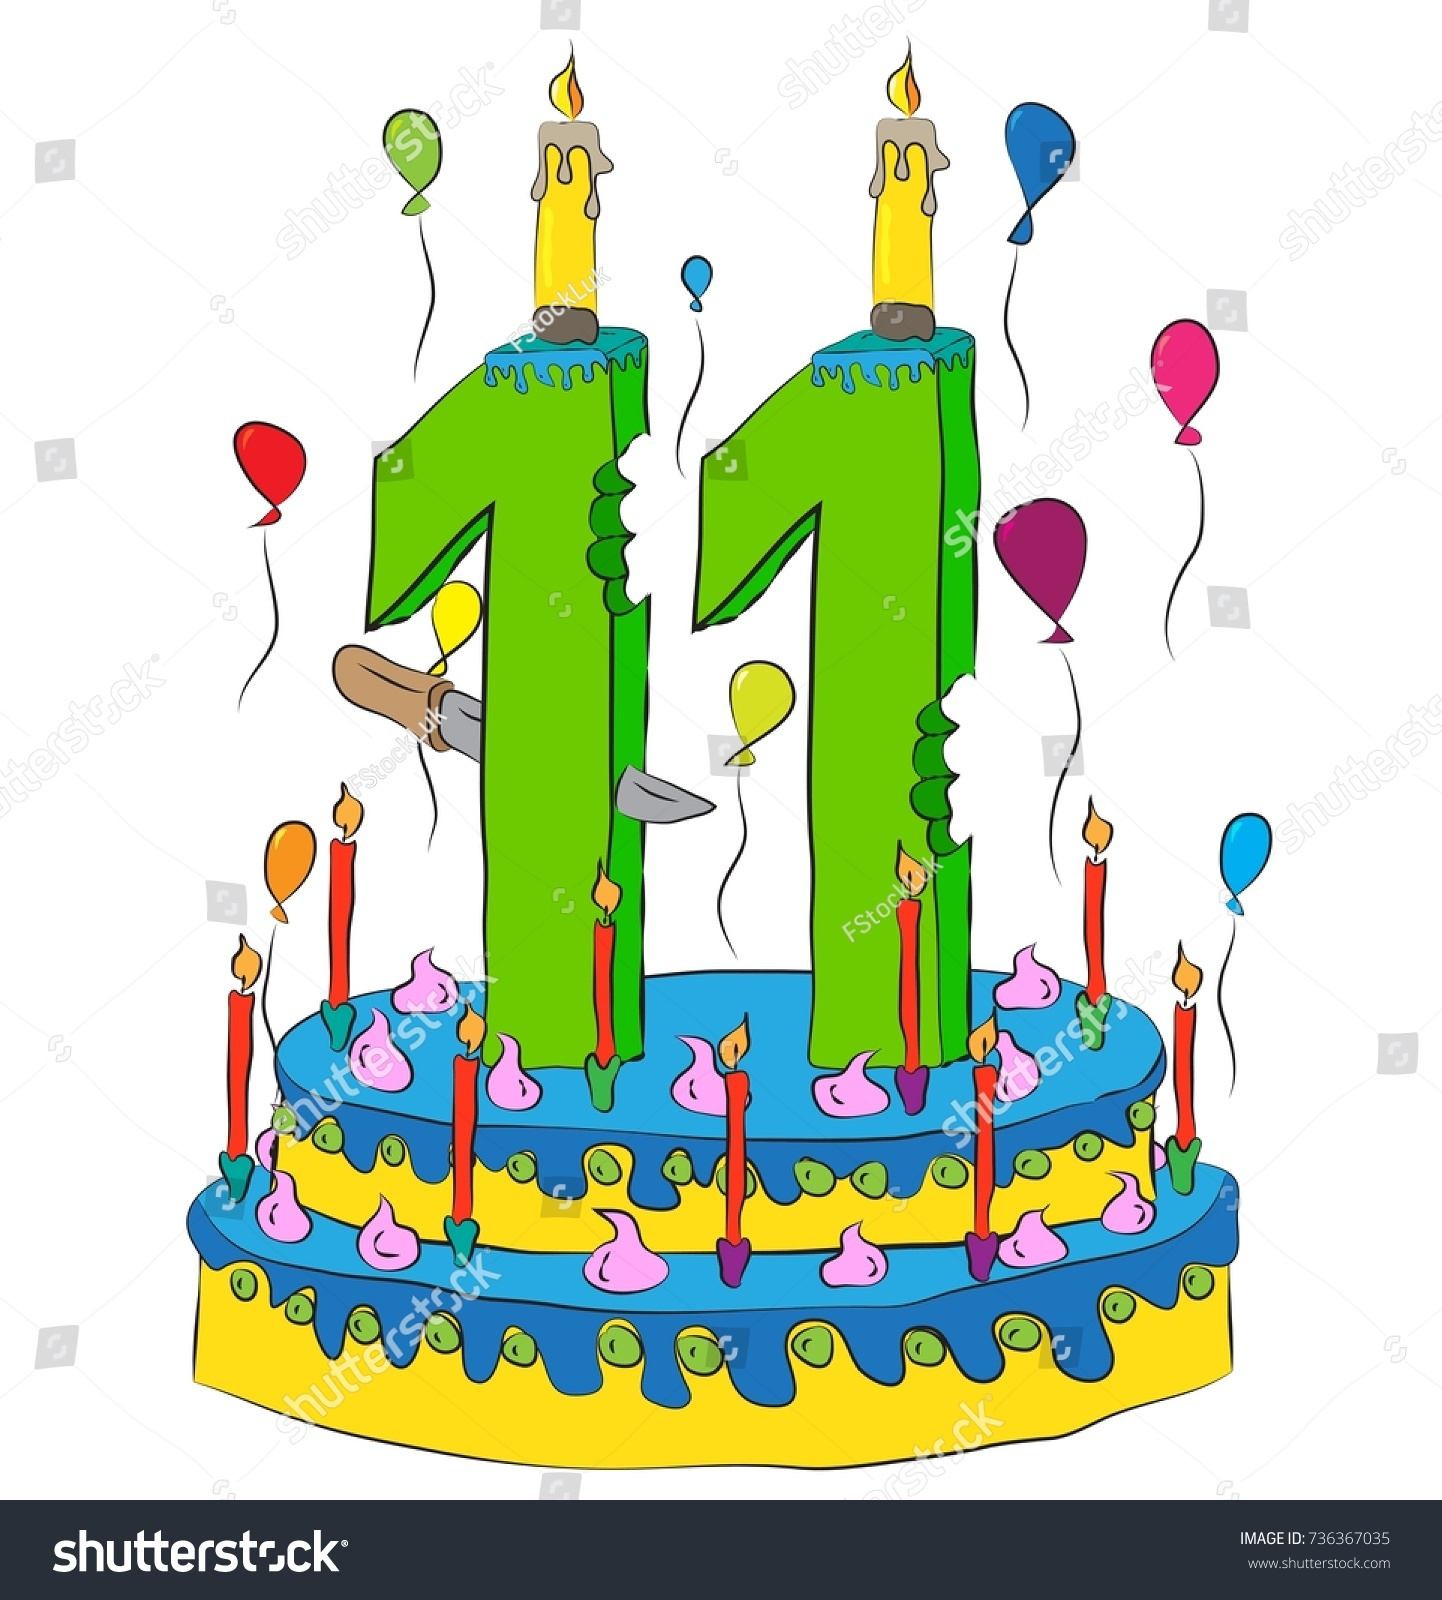 11 Birthday Cake With Number Eleven Candle Celebrating Eleventh Year Of Life Colorful Balloons